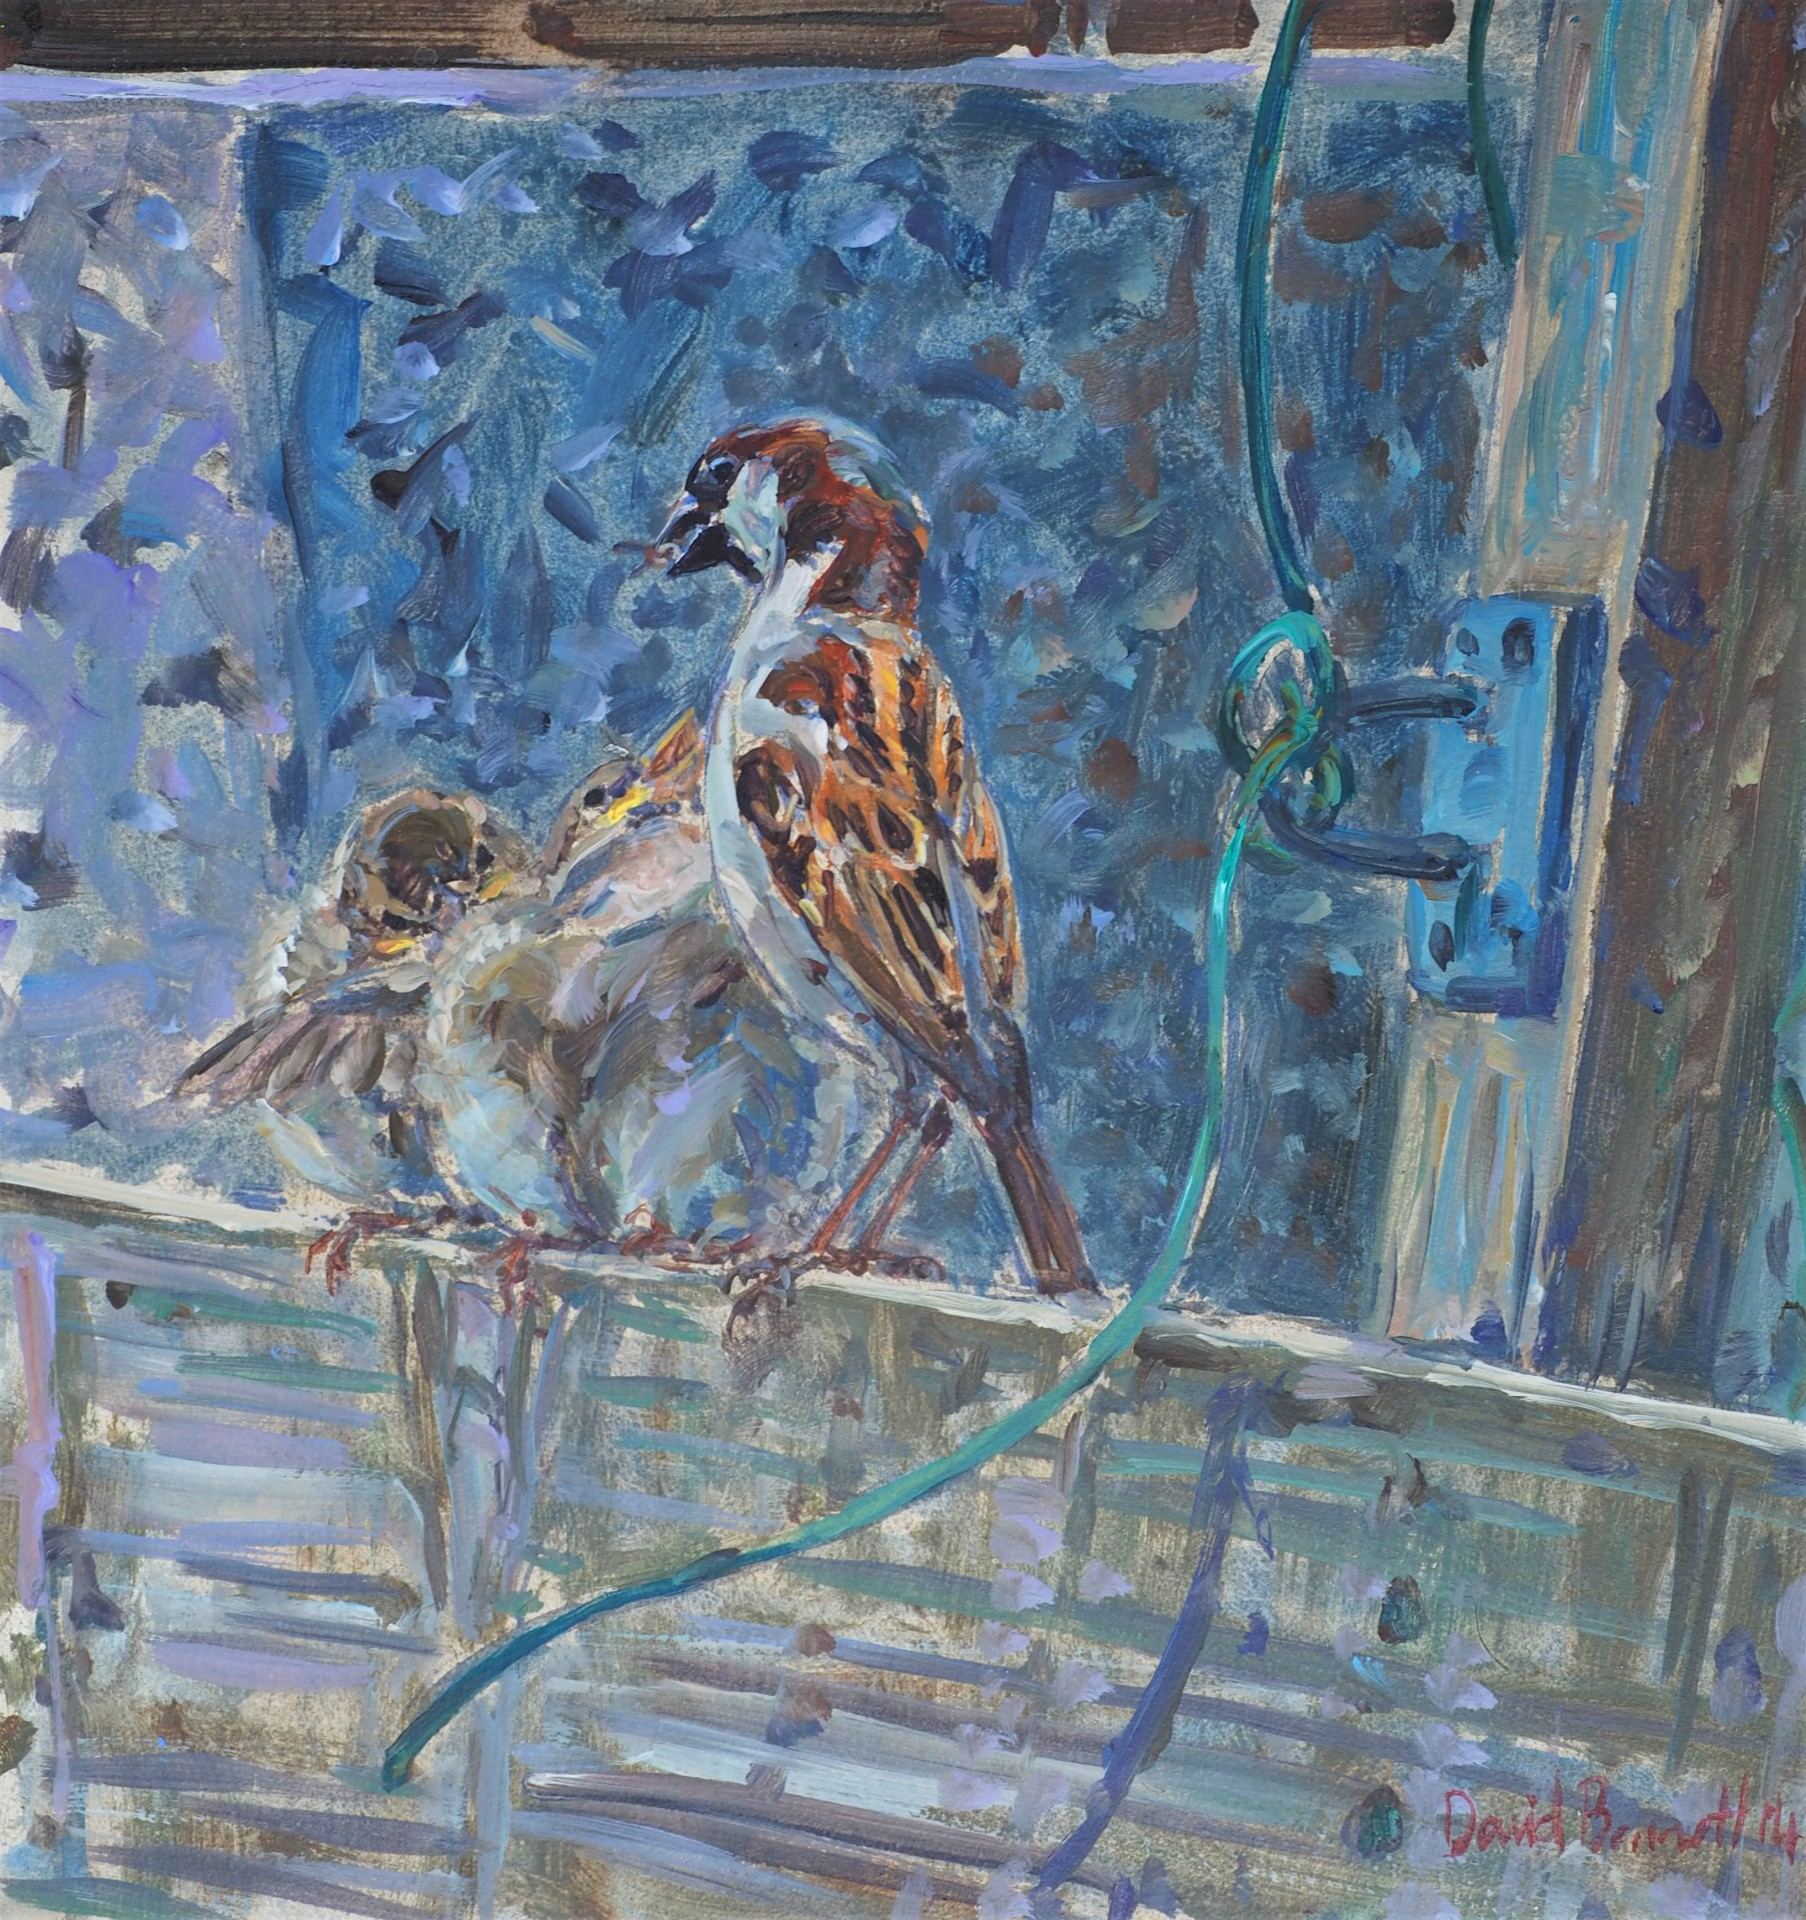 House Sparrows, Starbeck, Harrogate, North Yorkshire